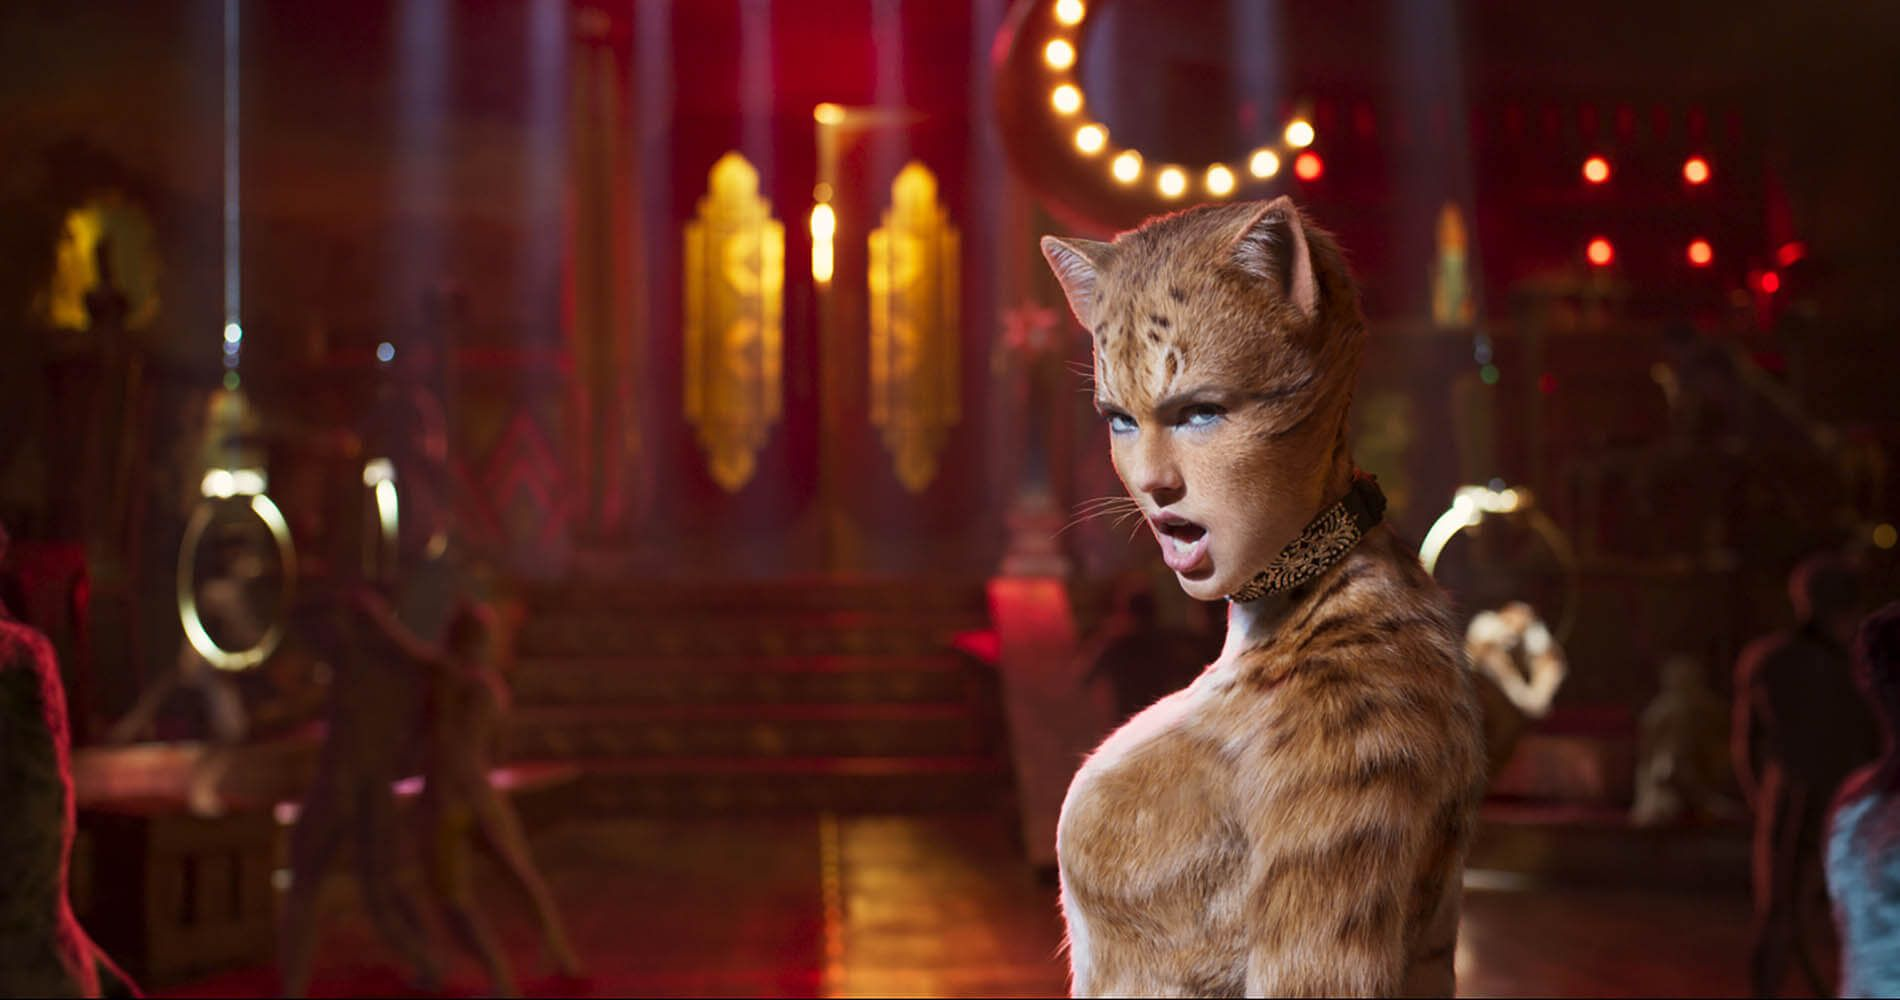 Here's Your First Look at Taylor Swift and Jennifer Hudson in the 'Cats' Trailer